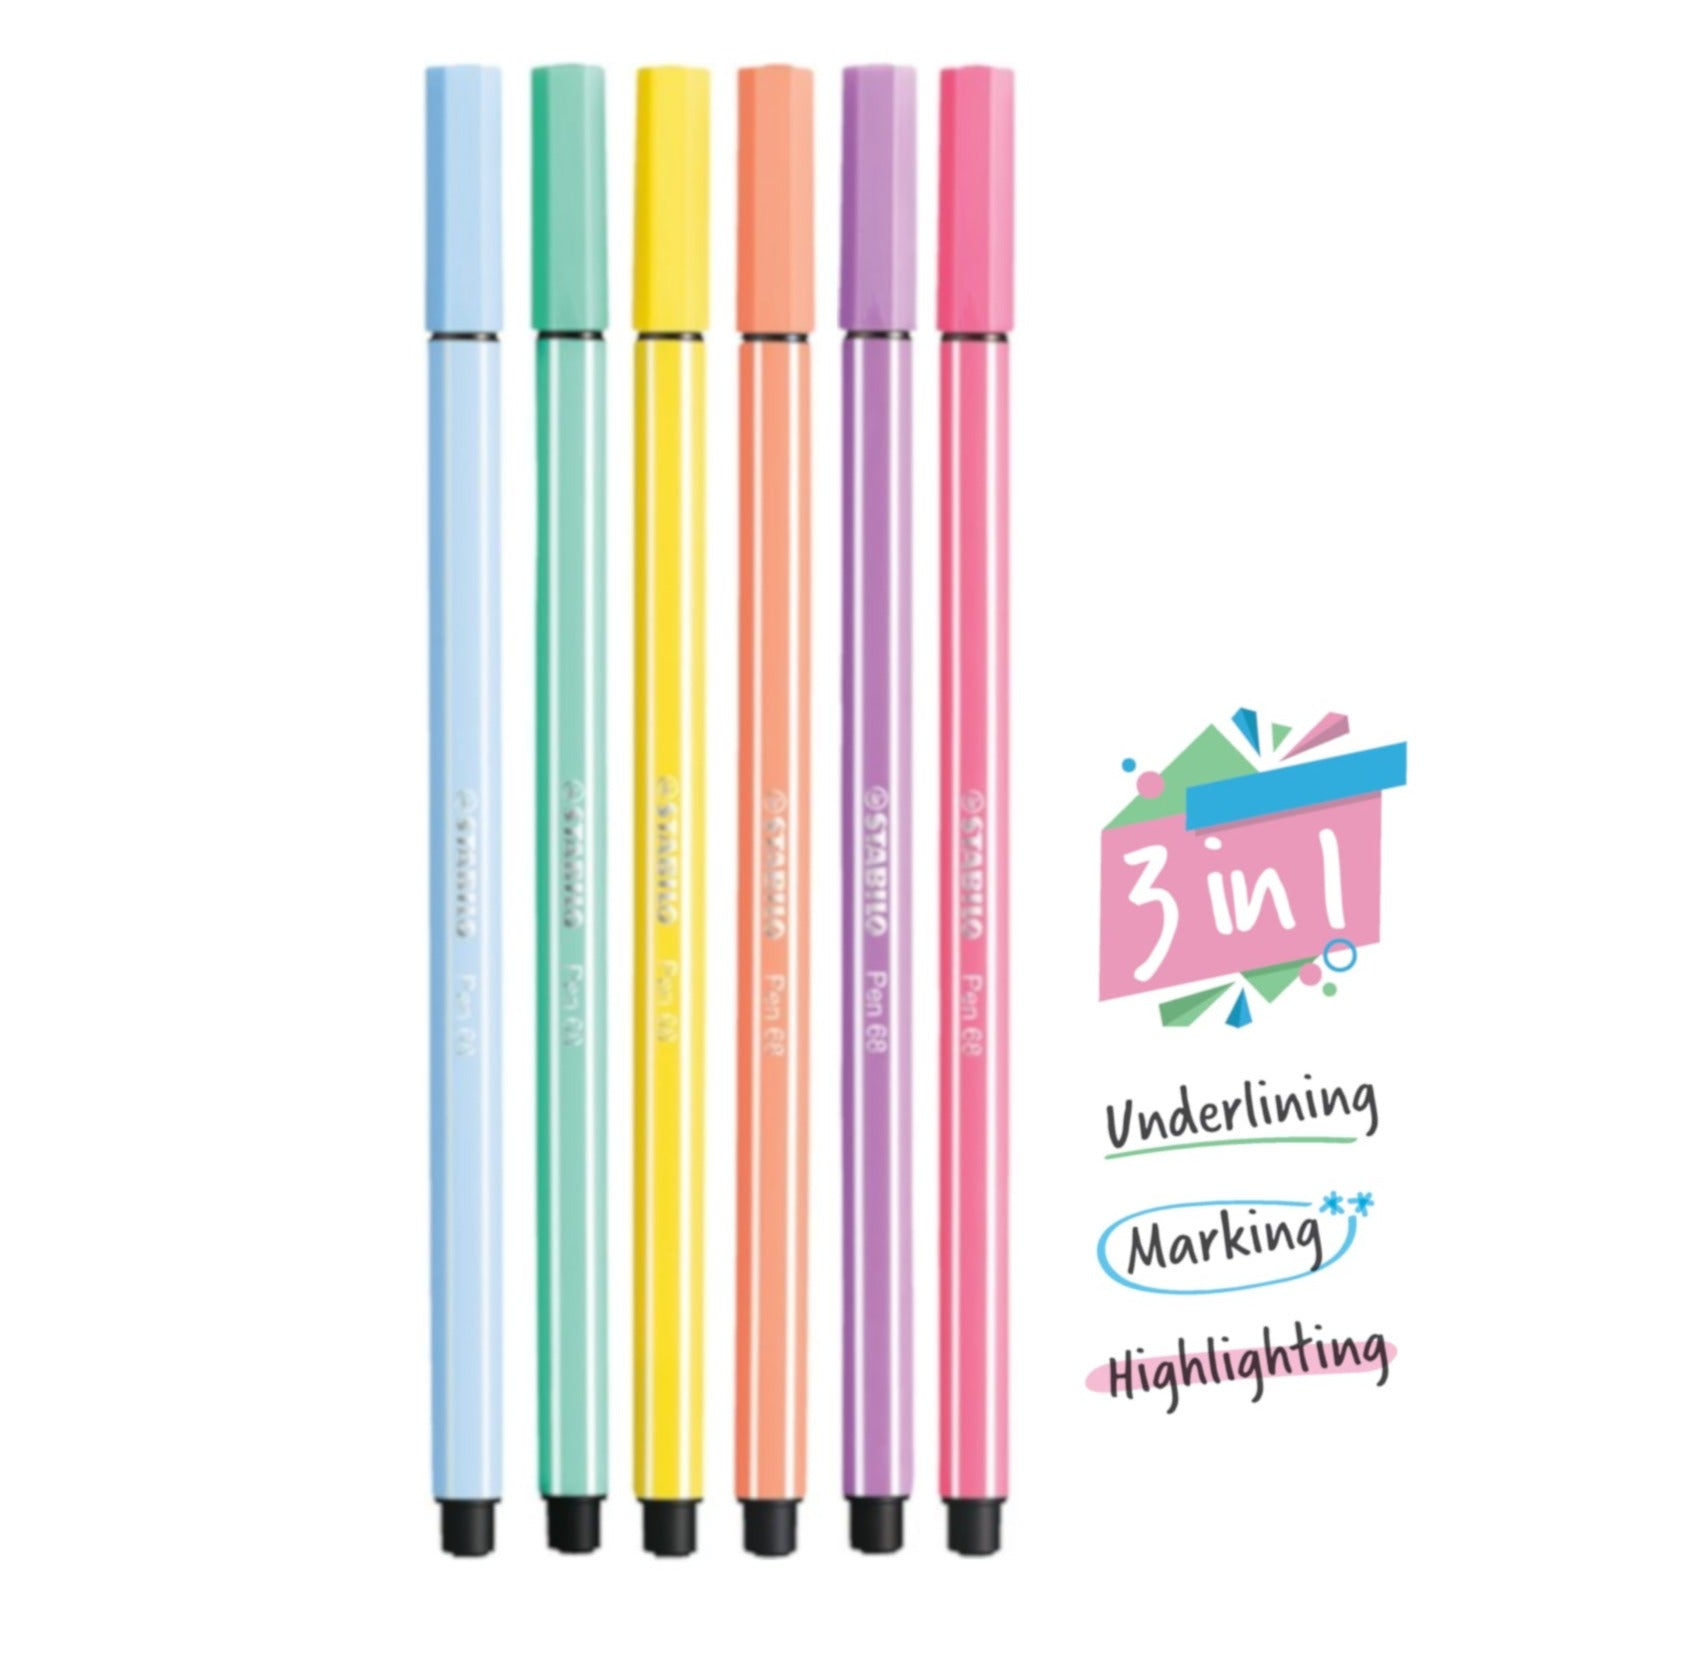 STABILO Pen 68 Marking Highlighter Pen And Text Markers - Pastel - Schwan-STABILO -Most colourful Stationery Shop